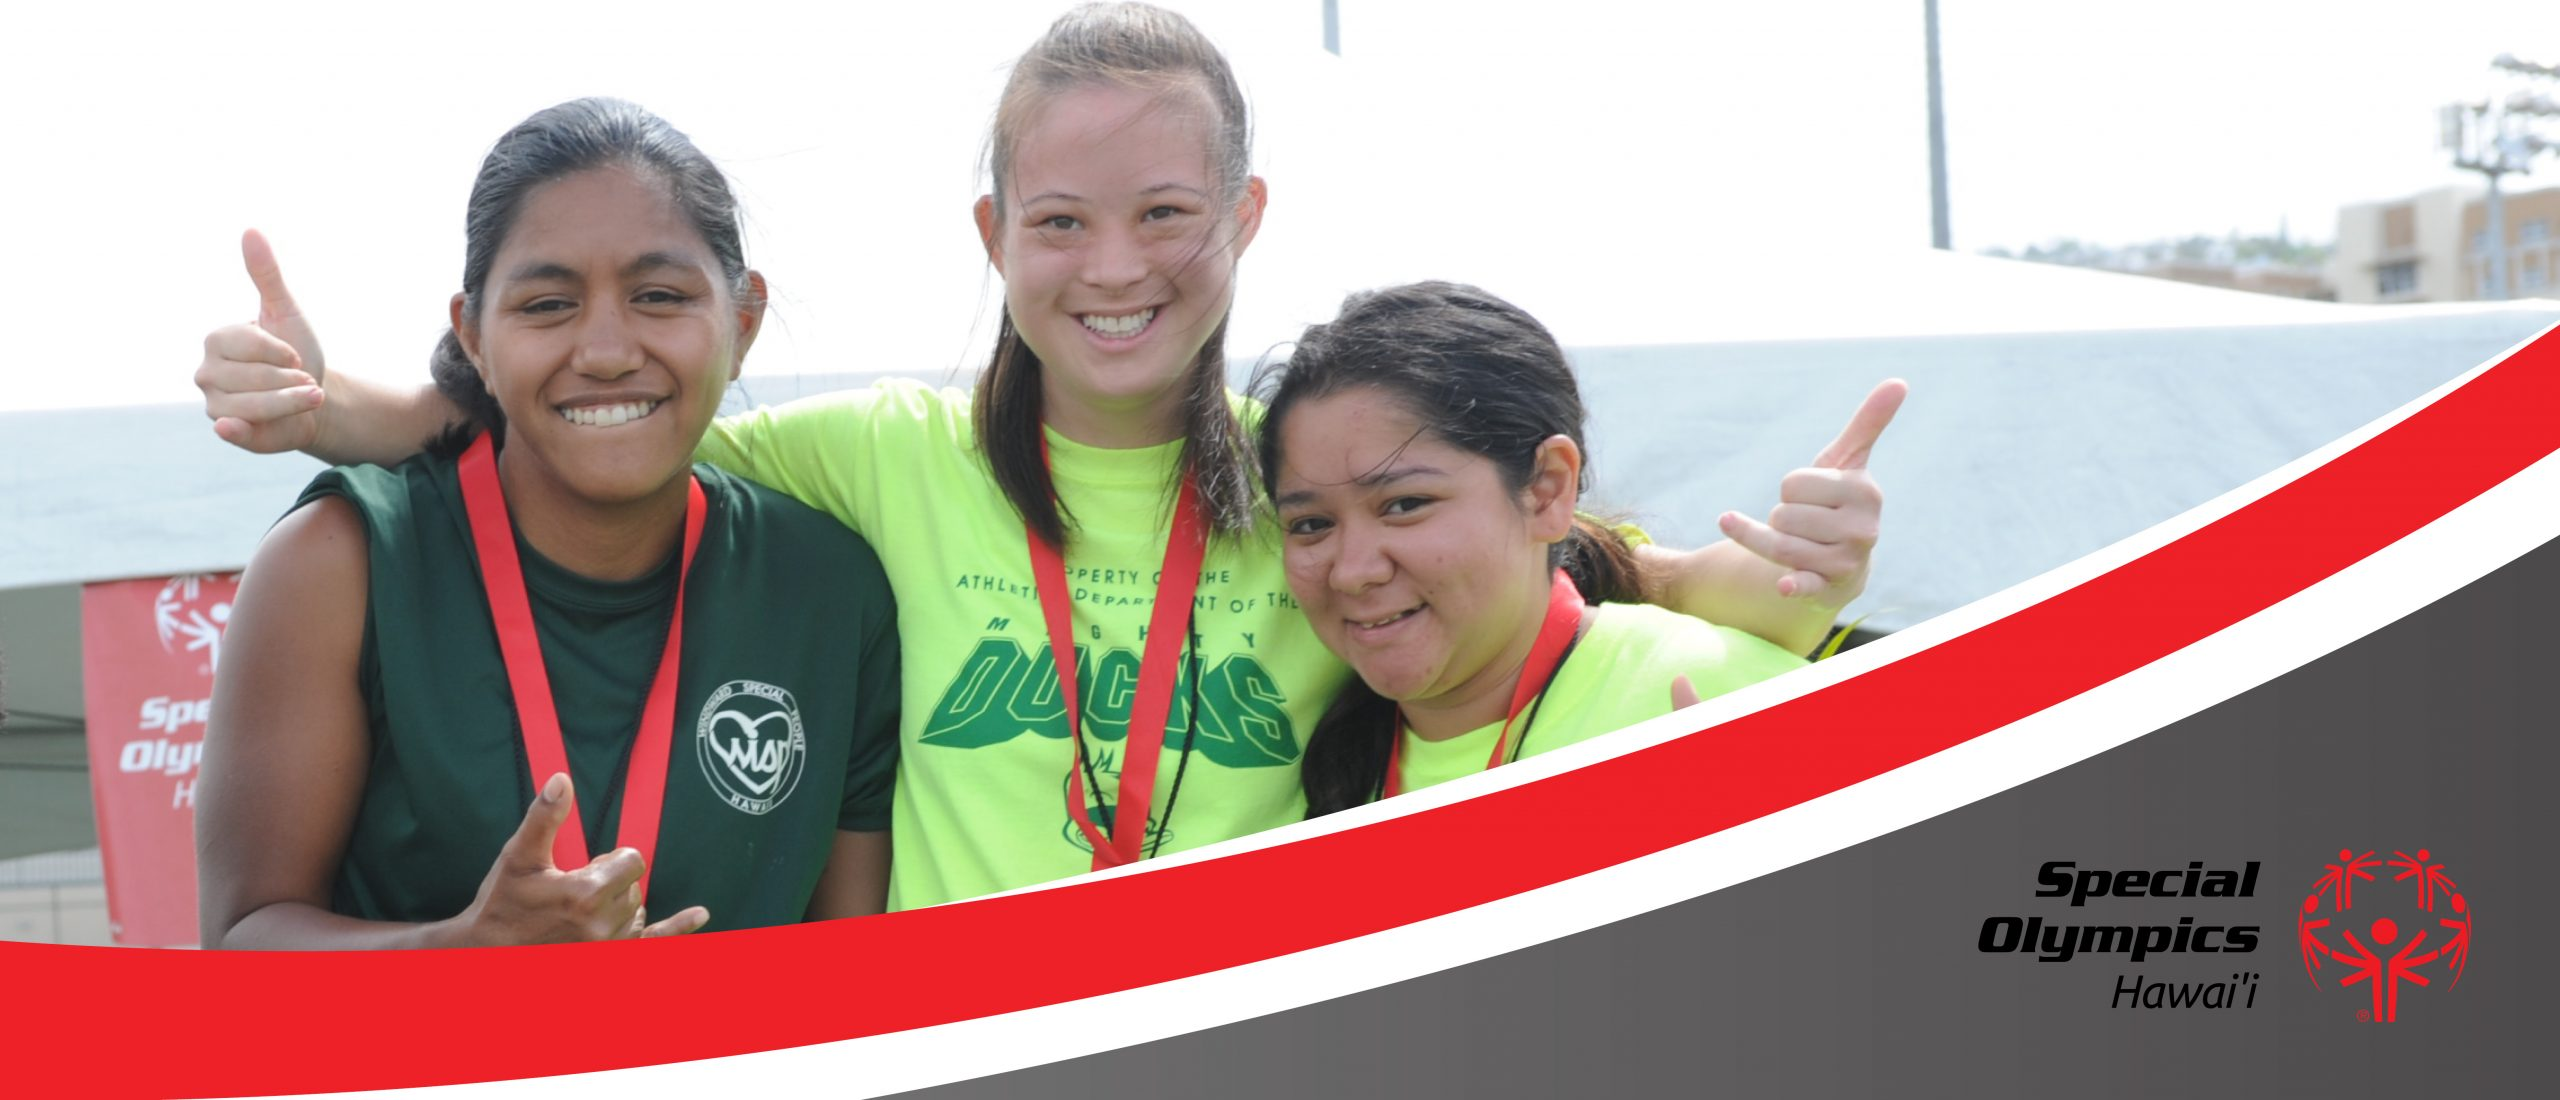 Special Olympics Hawaiʻi's Paradise Plunge Fundraiser Returns with a Splash